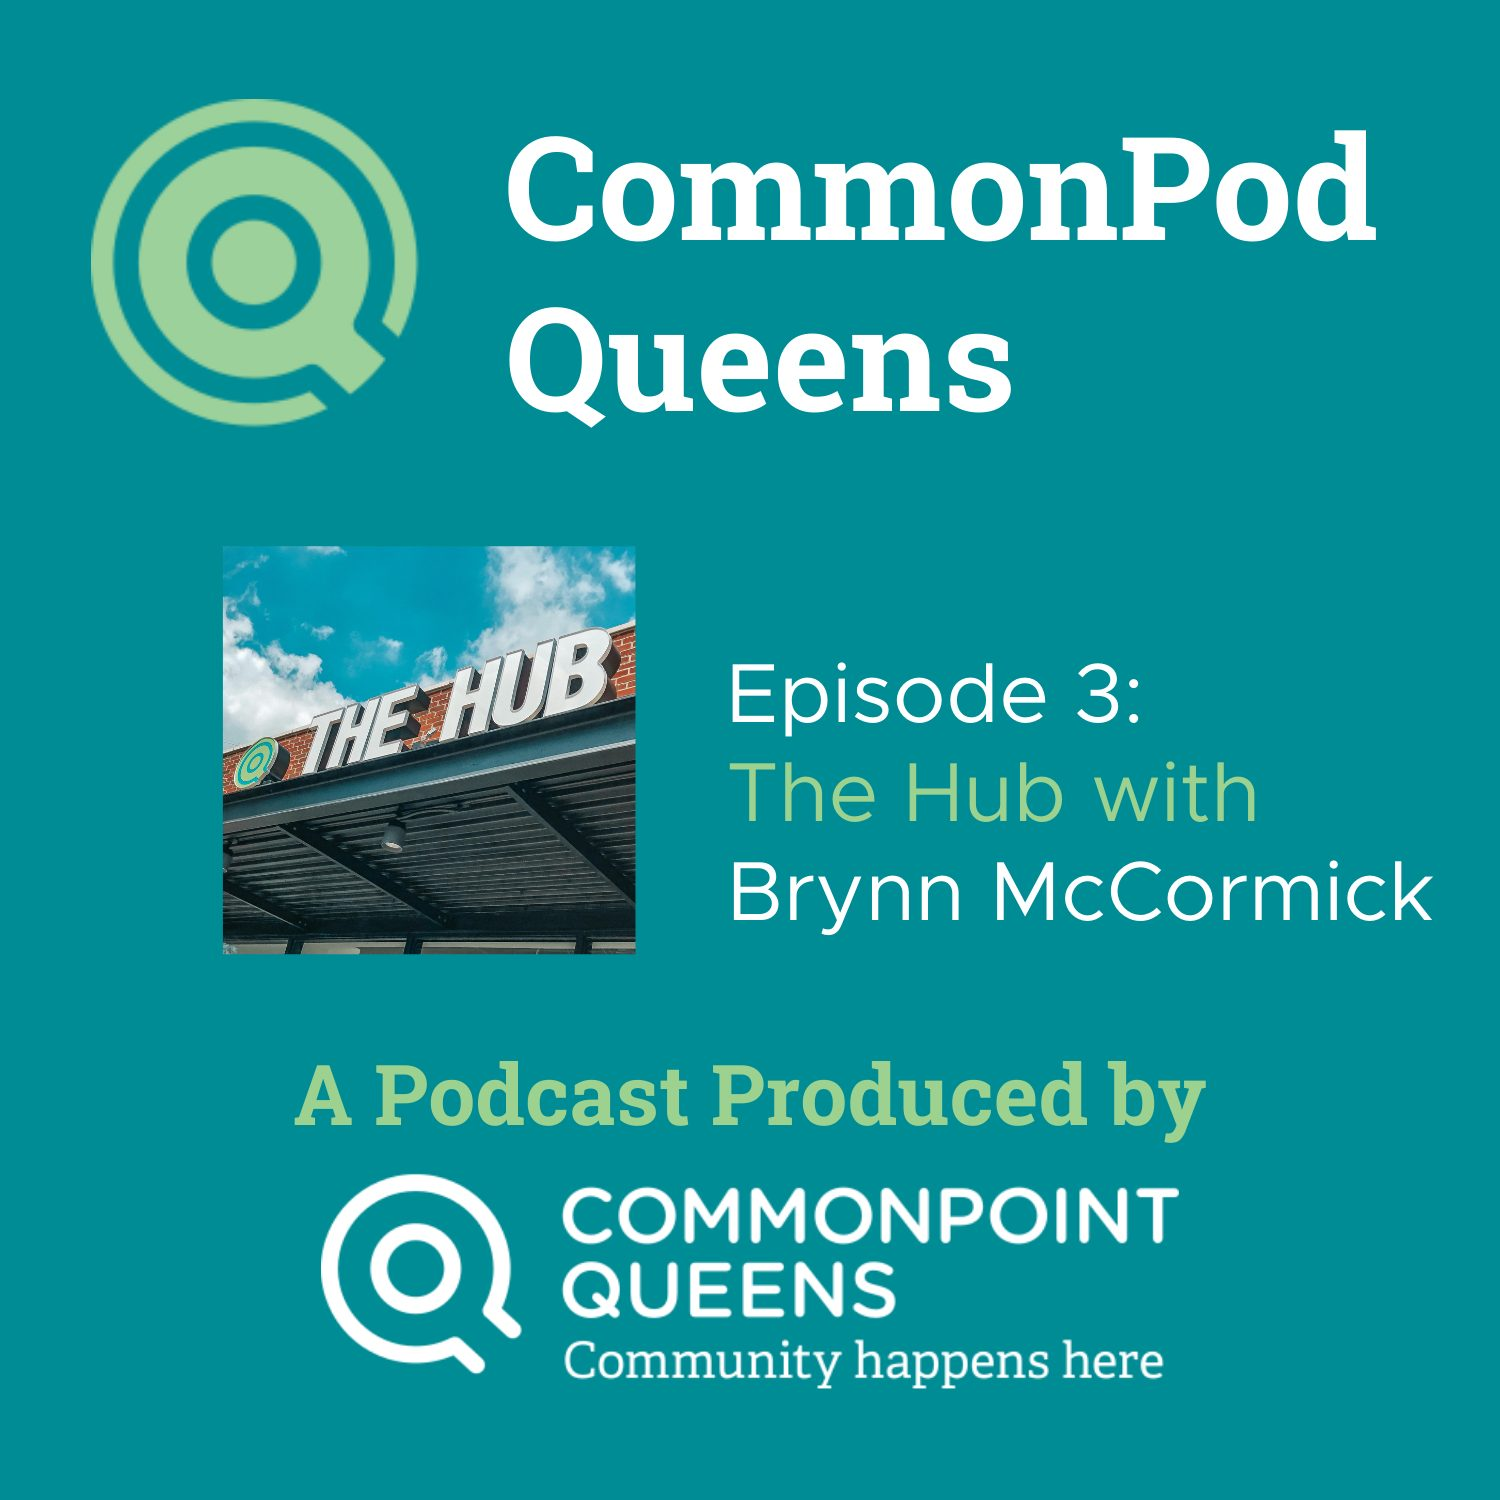 CommonPod Queens Episode 3: The Hub with Brynn McCormick